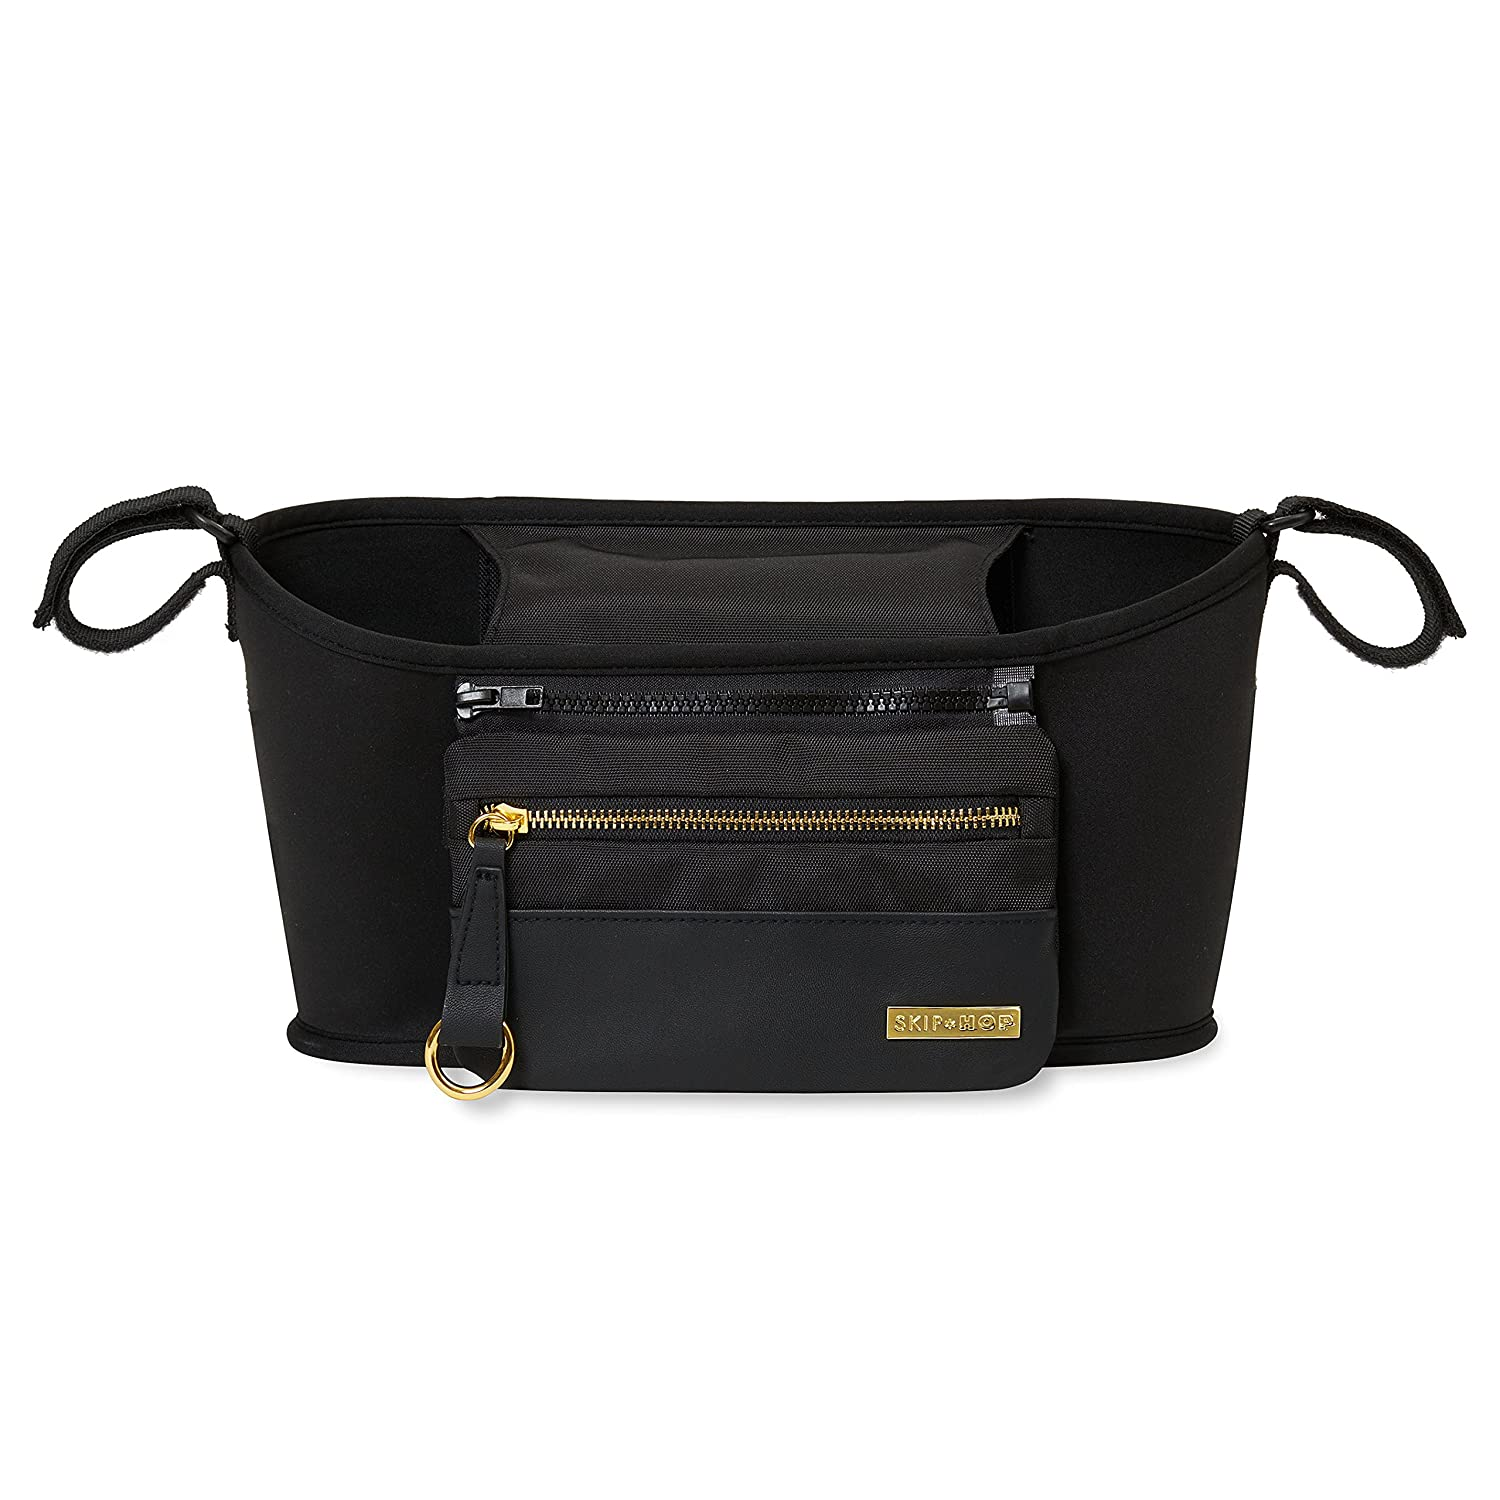 Skip Hop Stroller Organizer with Cup Holders, Grab & Go, Luxe Black 400600